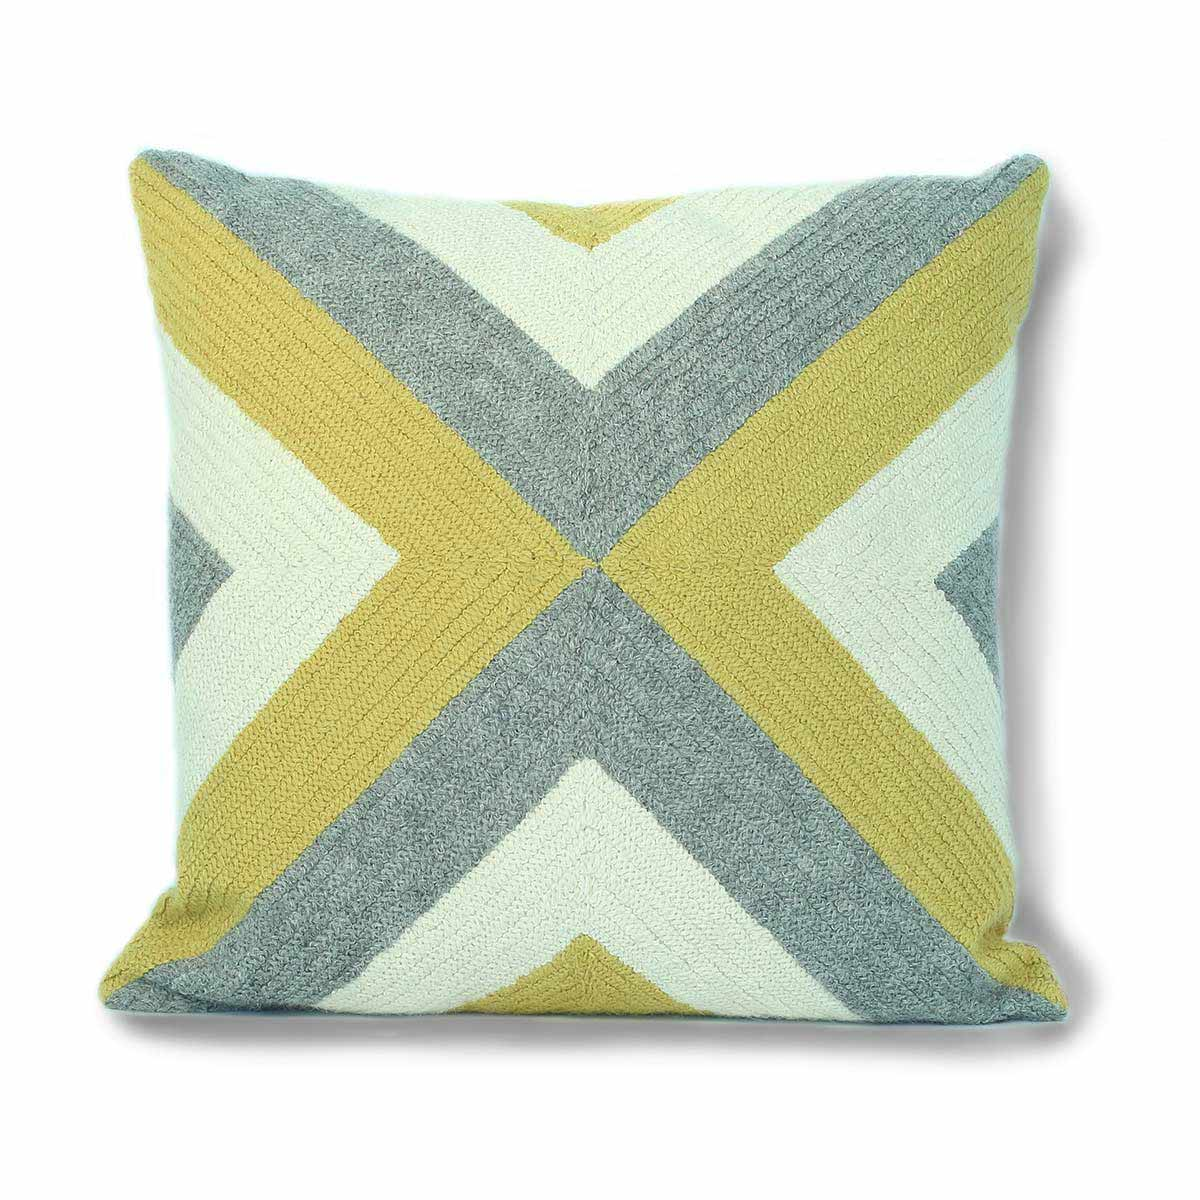 Grinda Square Pillow